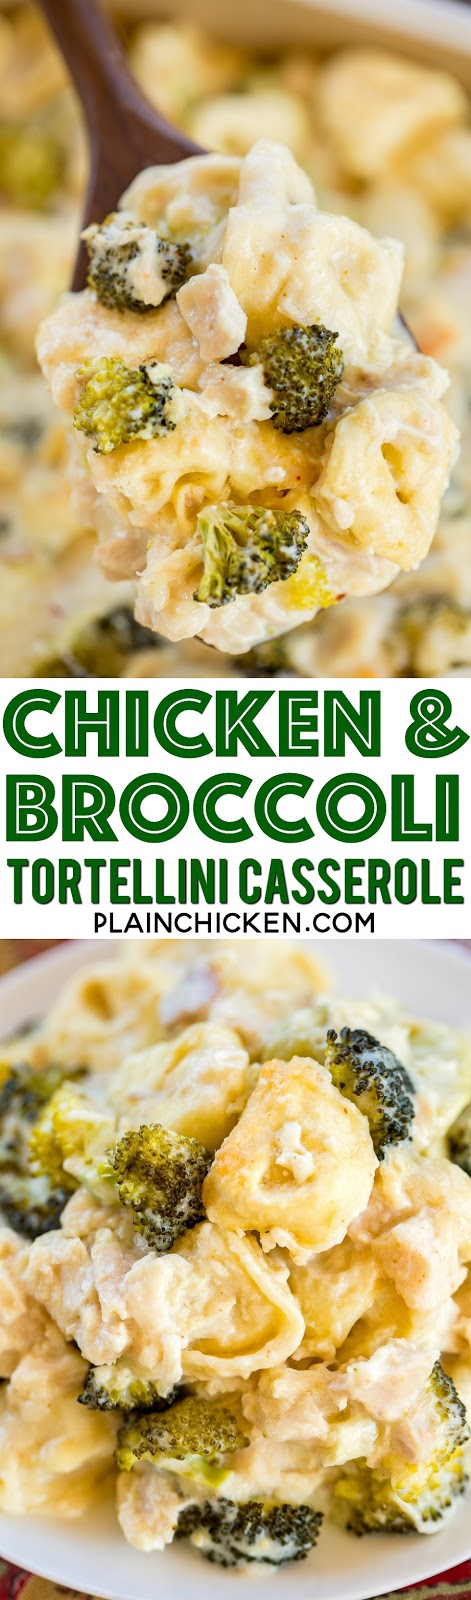 Chicken and Broccoli Tortellini Casserole - comfort food at its best! Chicken, broccoli and tortellini tossed in a quick white sauce and topped with parmesan cheese. The whole family cleaned their plate! Even our picky eaters!! Chicken, broccoli, tortellini, butter, flour, garlic, chicken broth, half-and-half, onion and red pepper. Can make ahead and freeze for later. Great easy weeknight dinner casserole recipe! #casserole #freezermeal #chickendinner #chickencasserole #kidfriendly